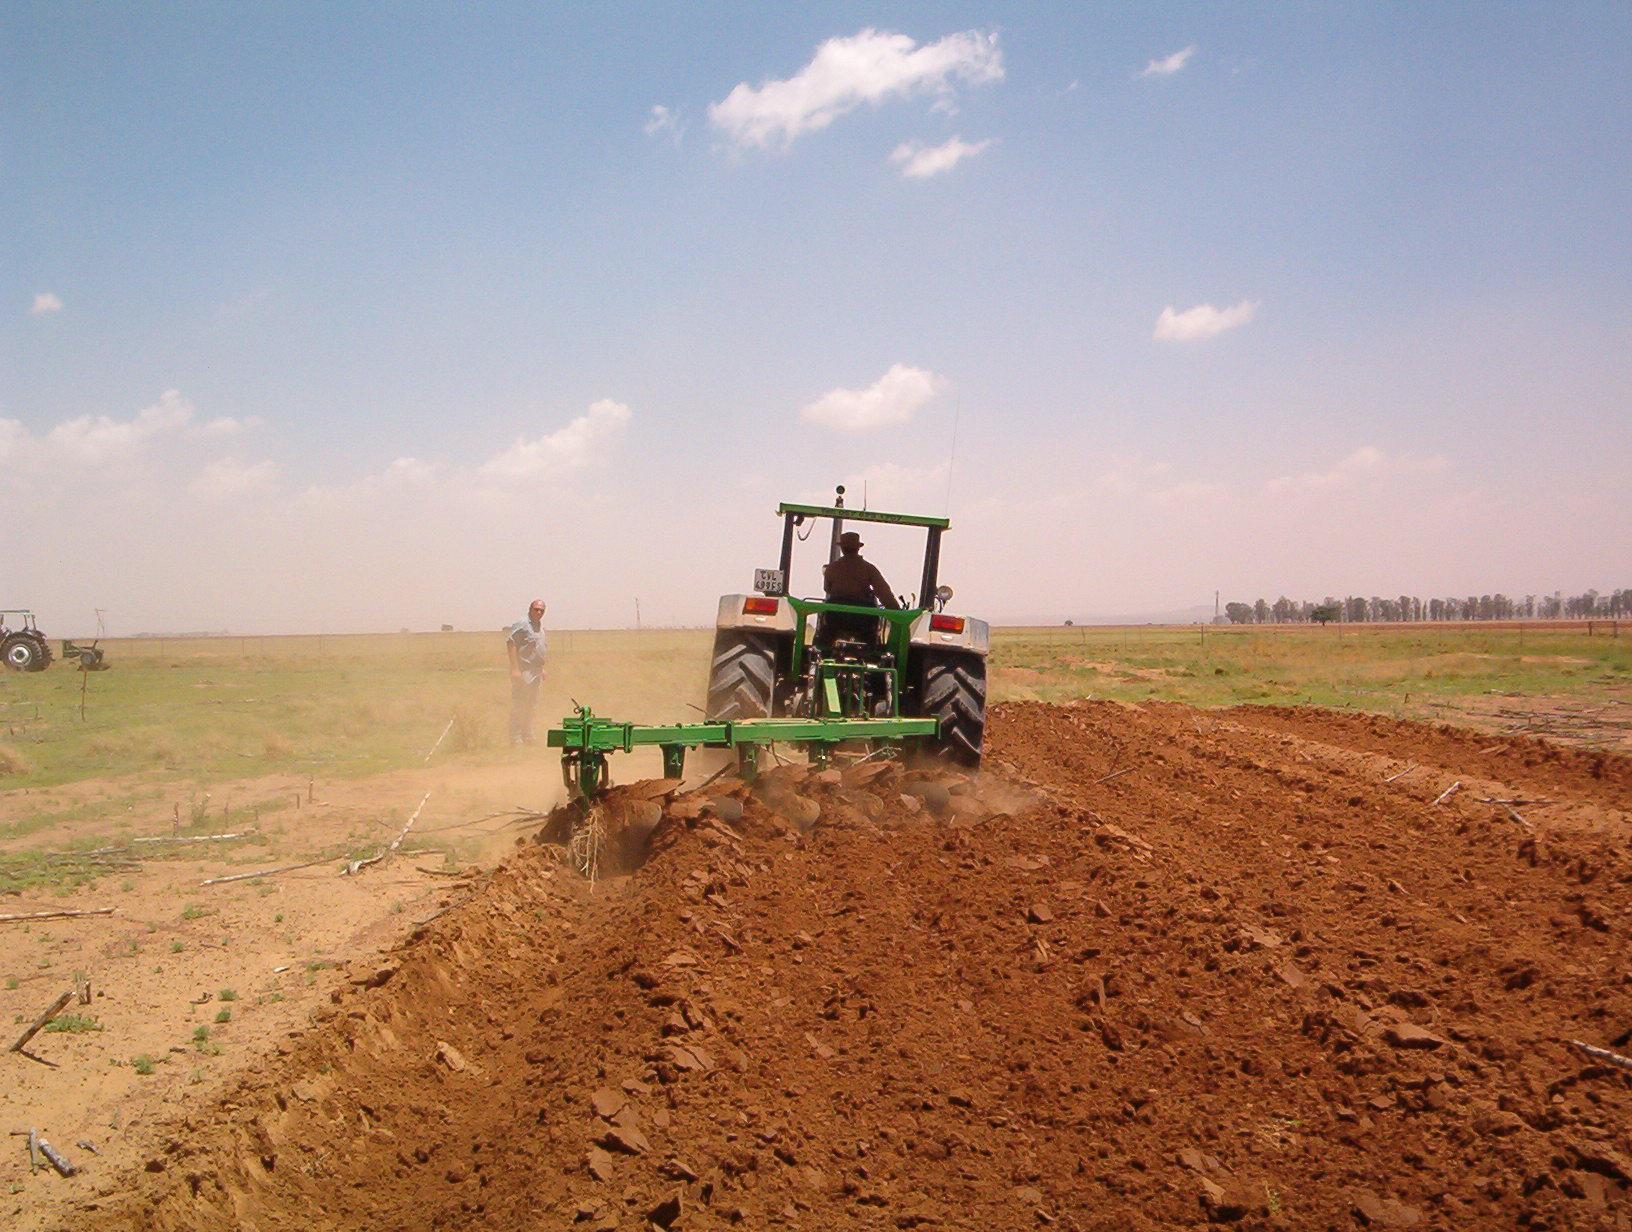 File:Plough.JPG - Wikipedia, the free encyclopedia